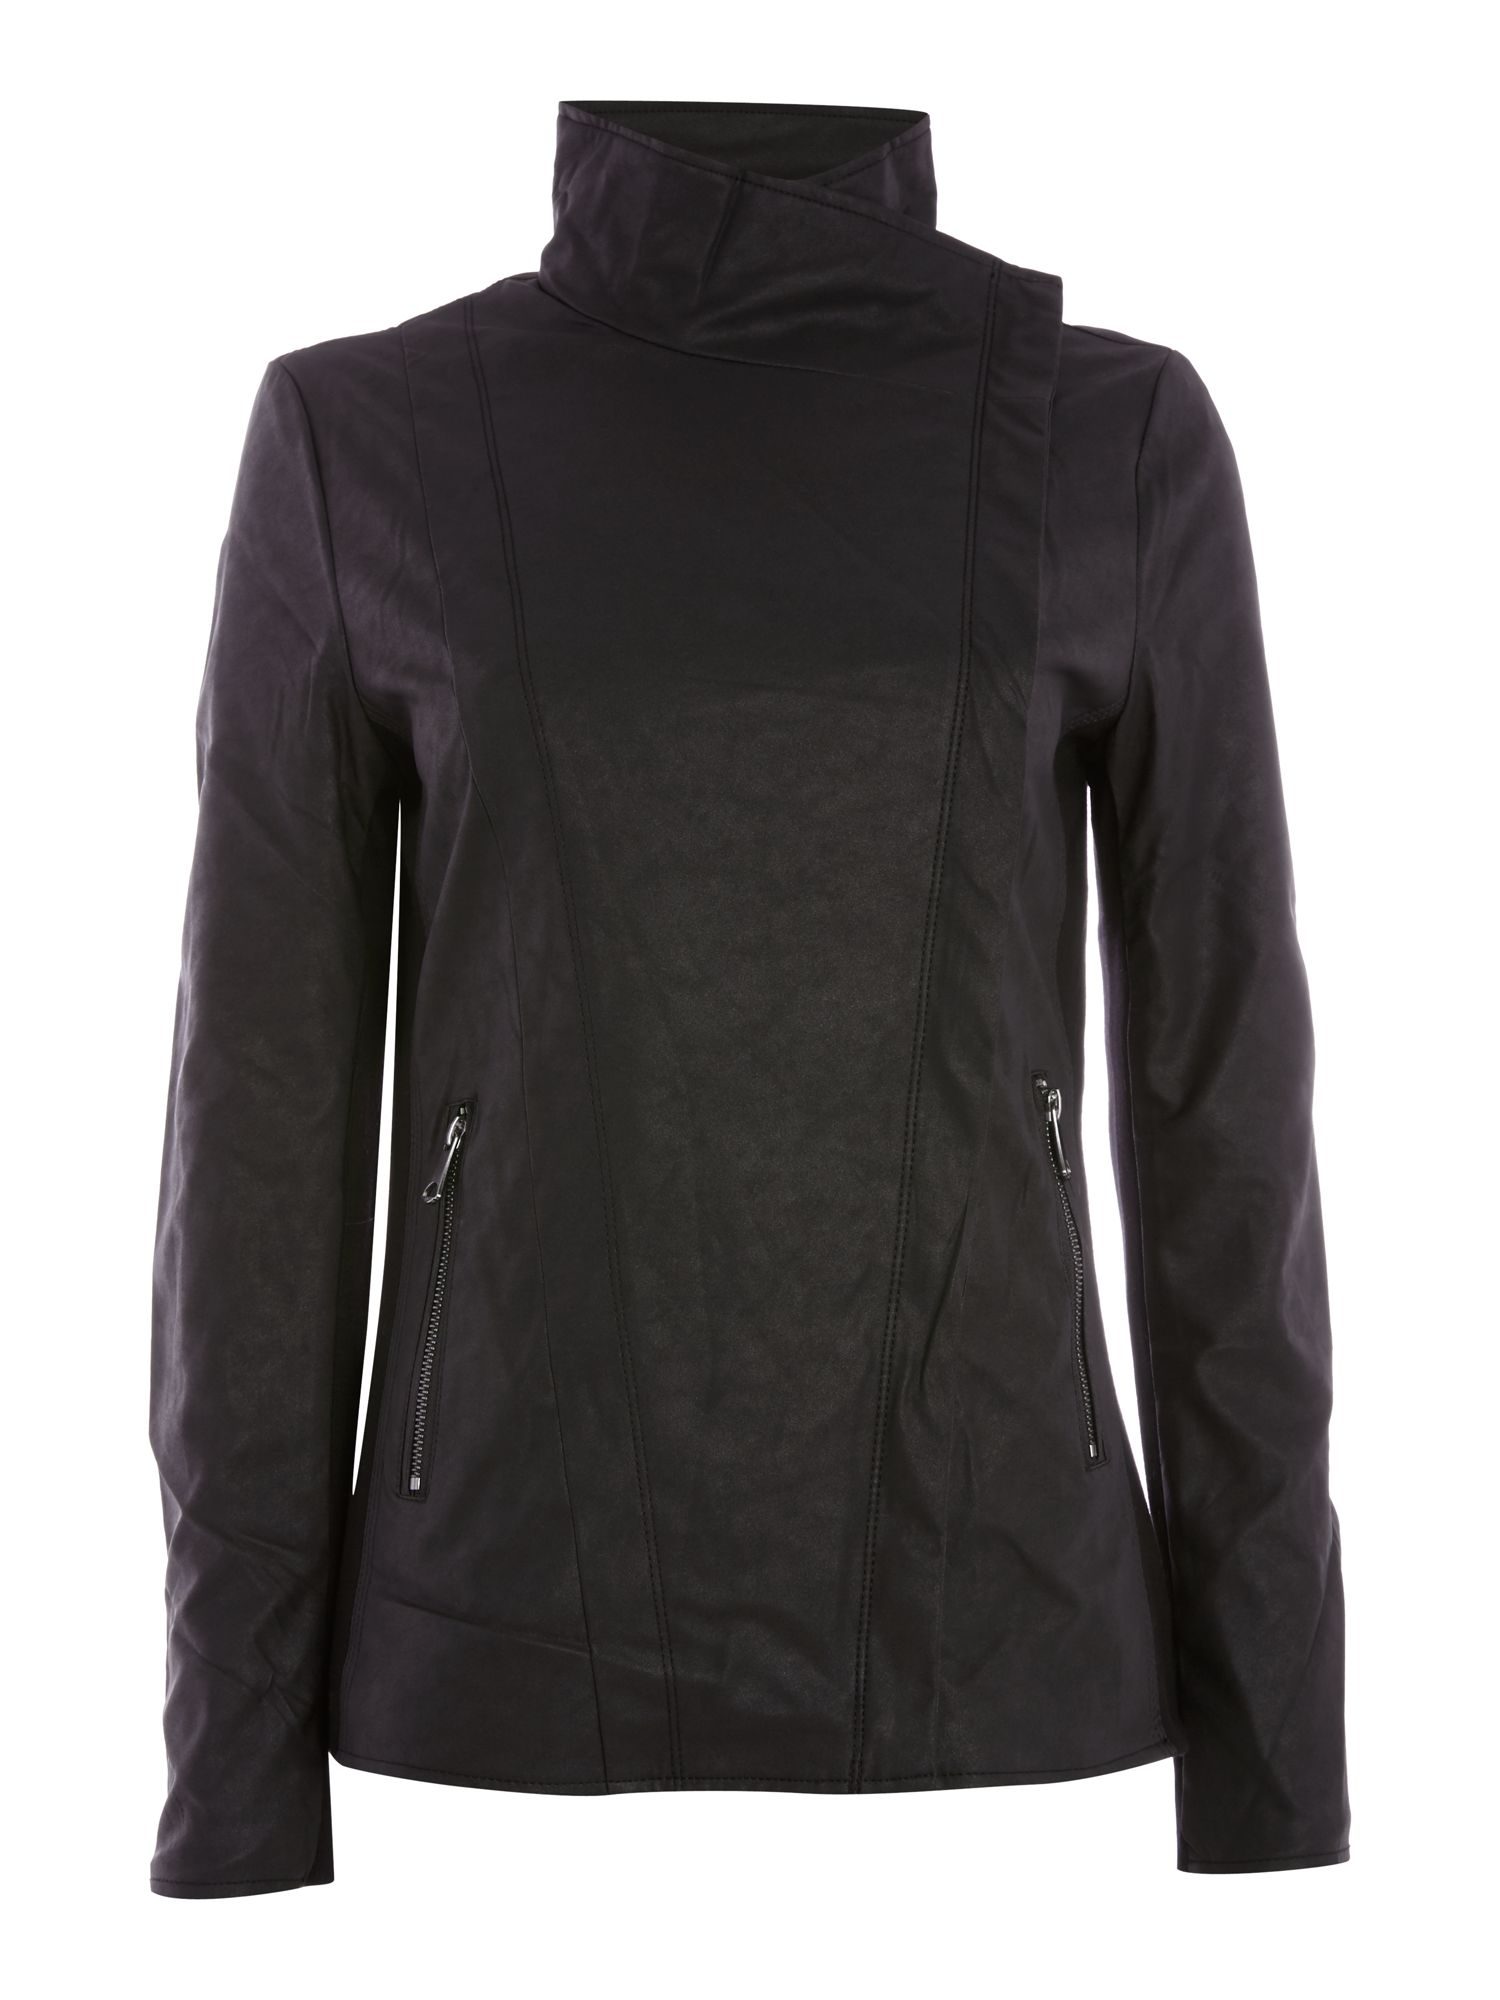 Andrew Marc PU Biker Jacket with Jersey Panels, Black